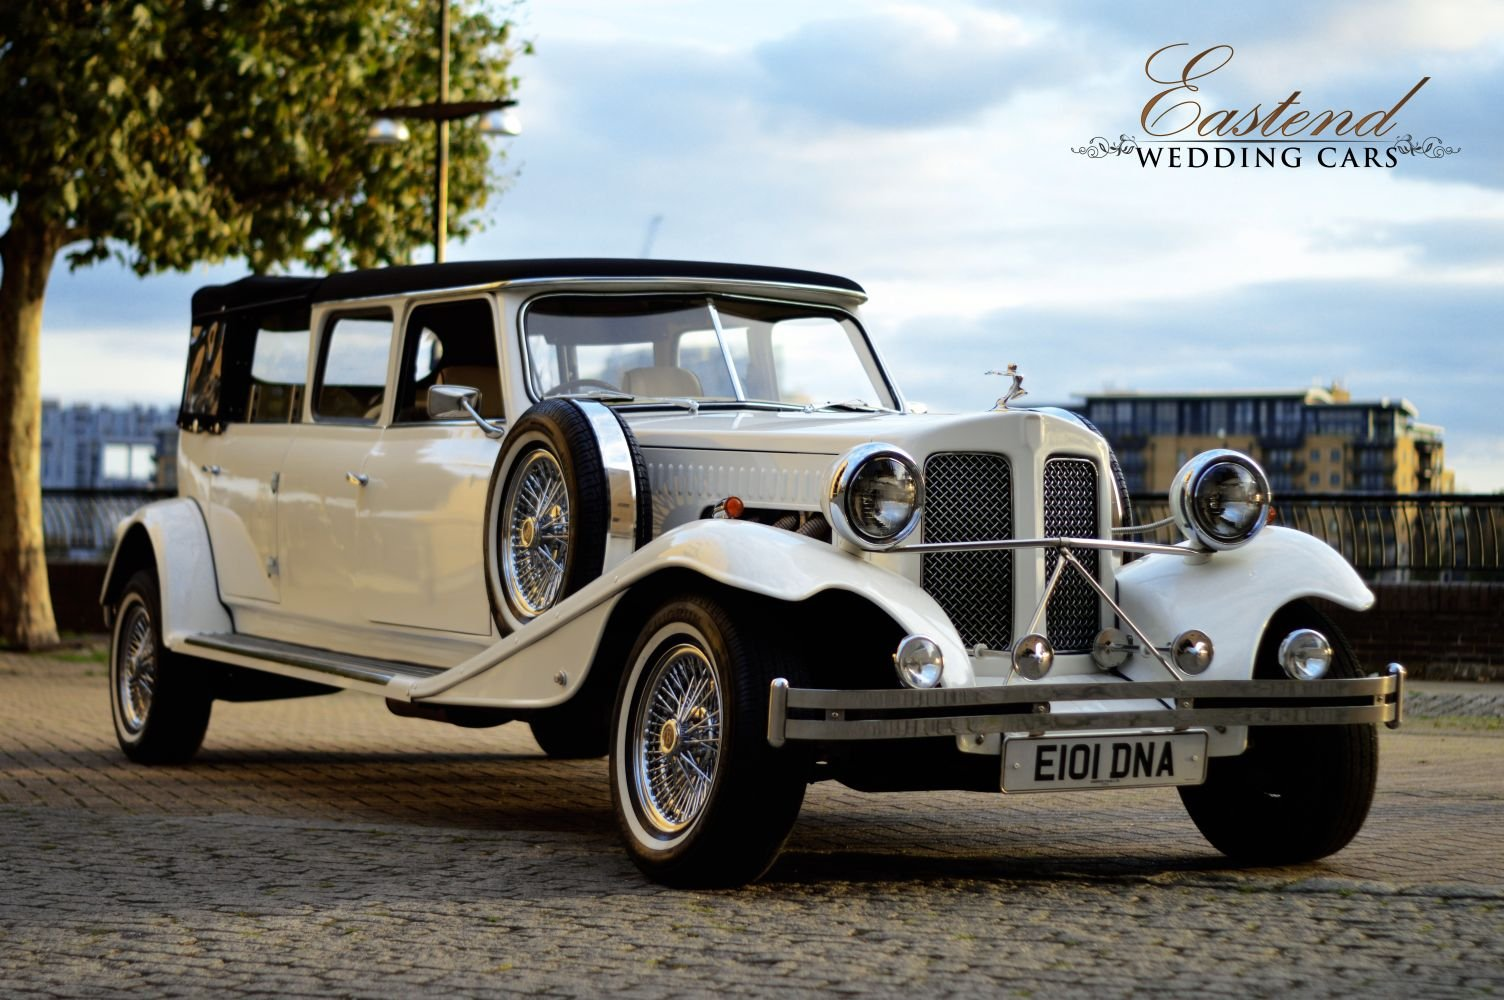 2018 Vintage wedding Car hire For Hire (picture 2 of 6)